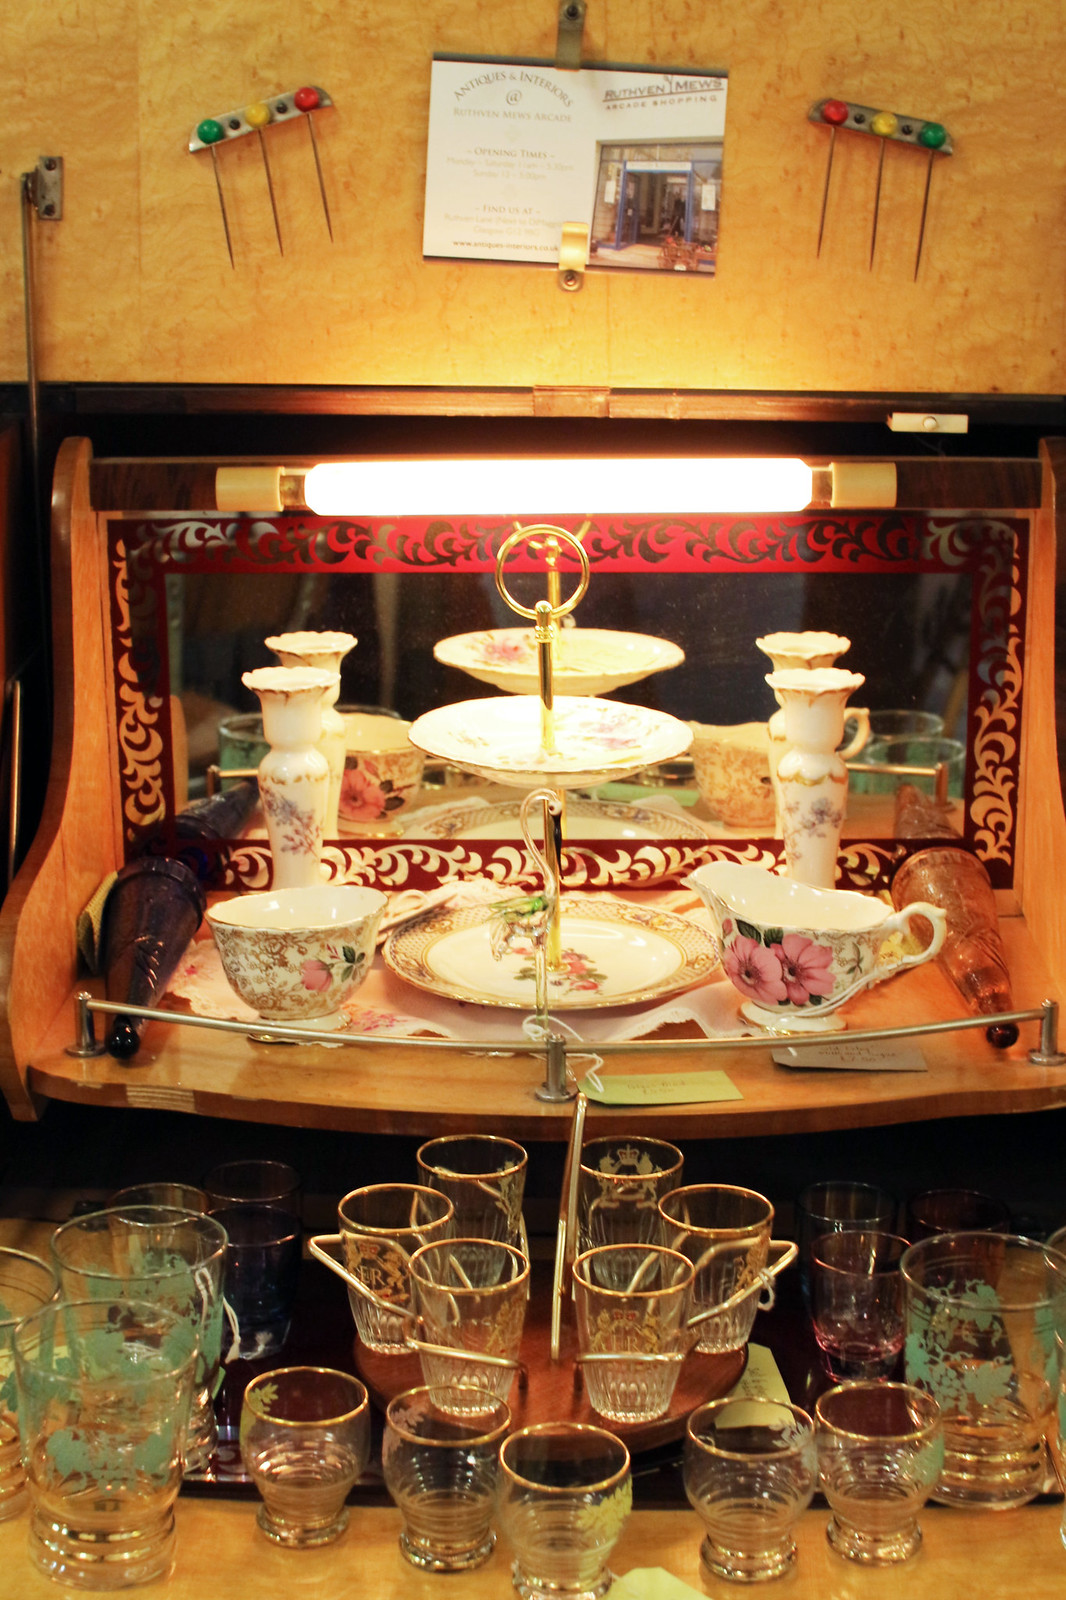 Cup & Saucer Vintage Tea Rooms Glasgow UK travel blogger